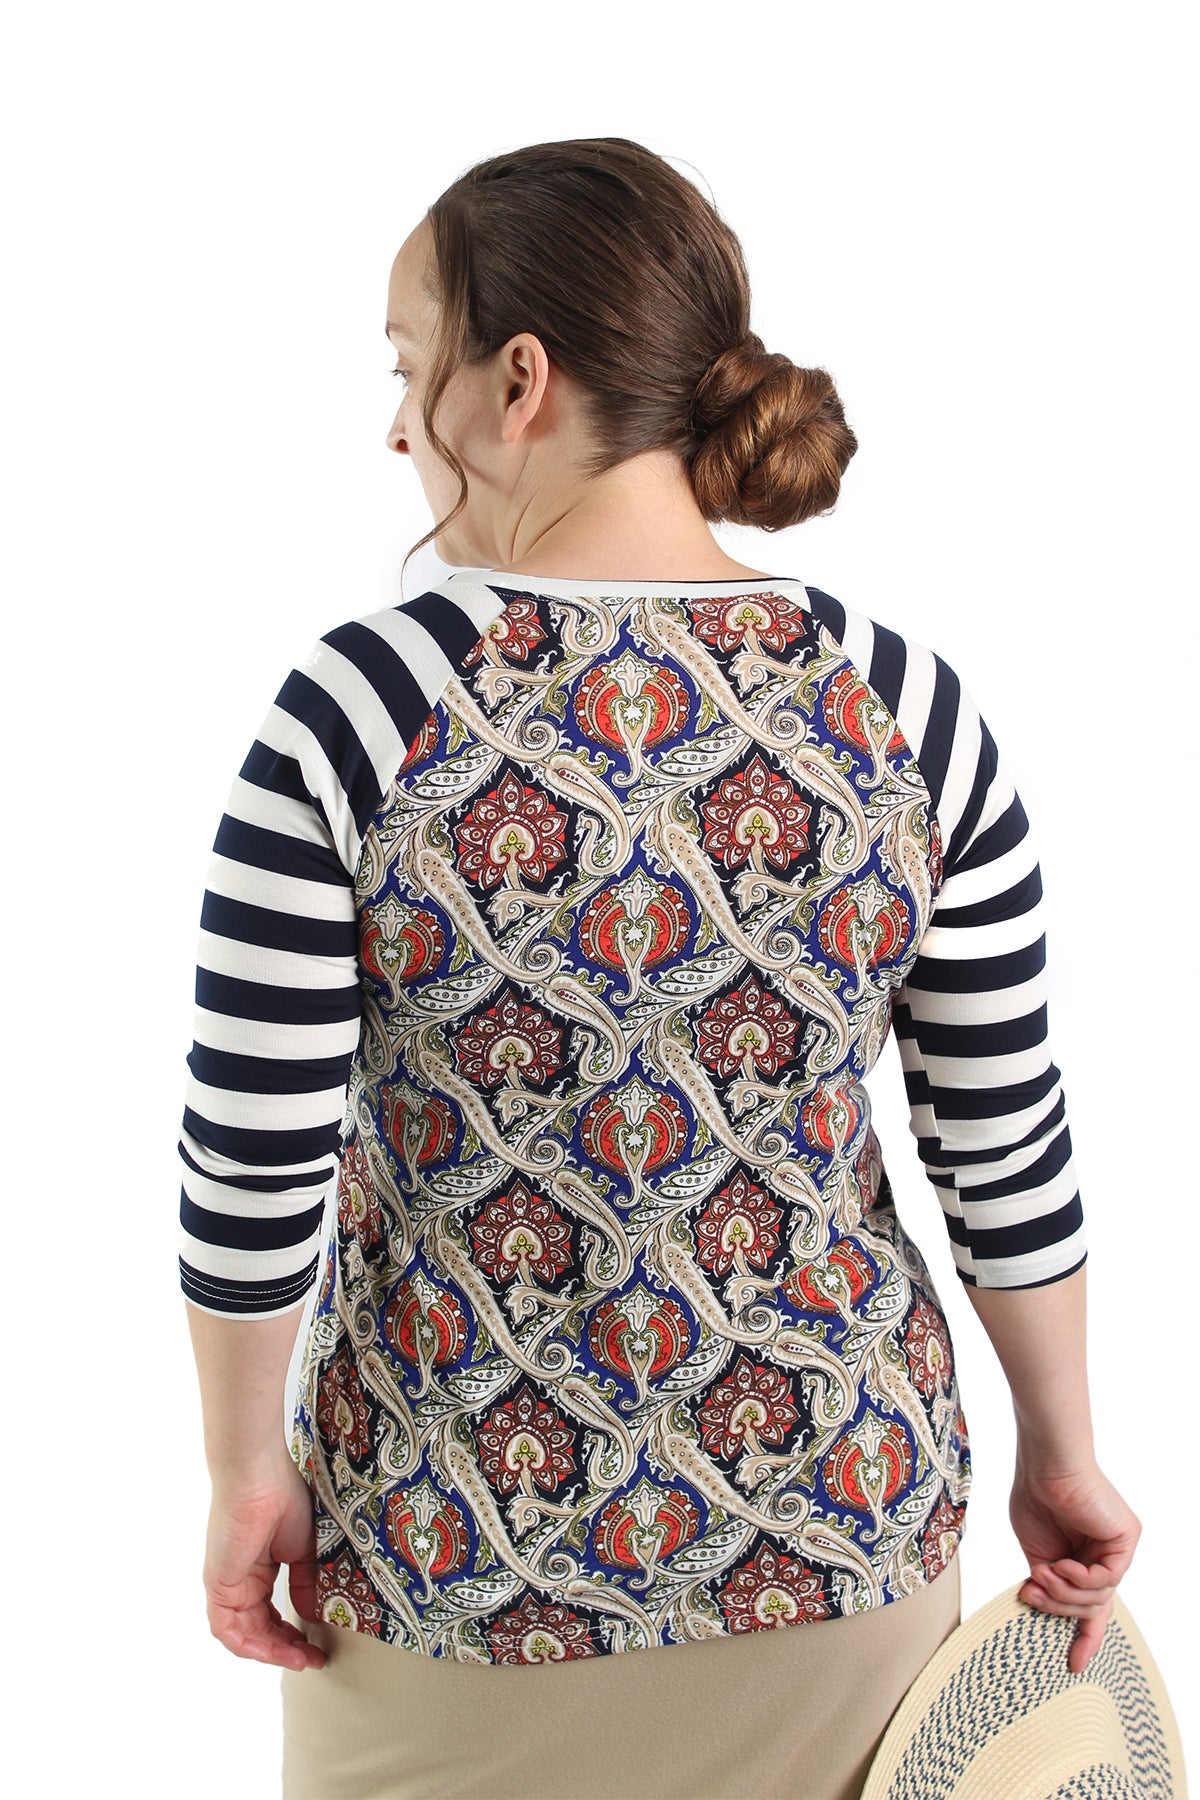 modest essential layering tee raglan sleeves navy stripe paisley